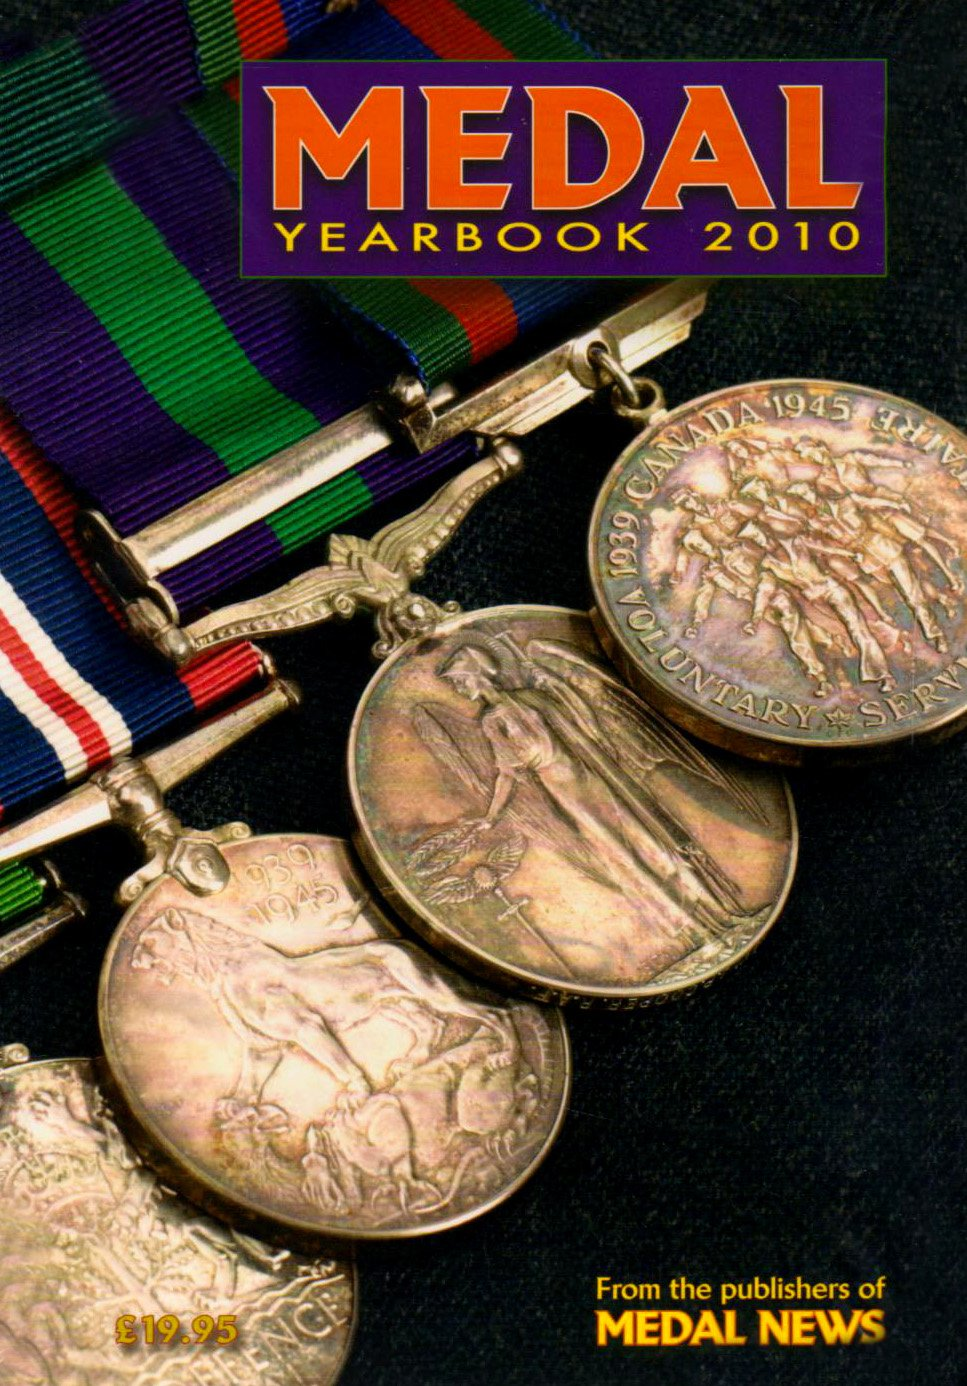 Medal Yearbook 2010